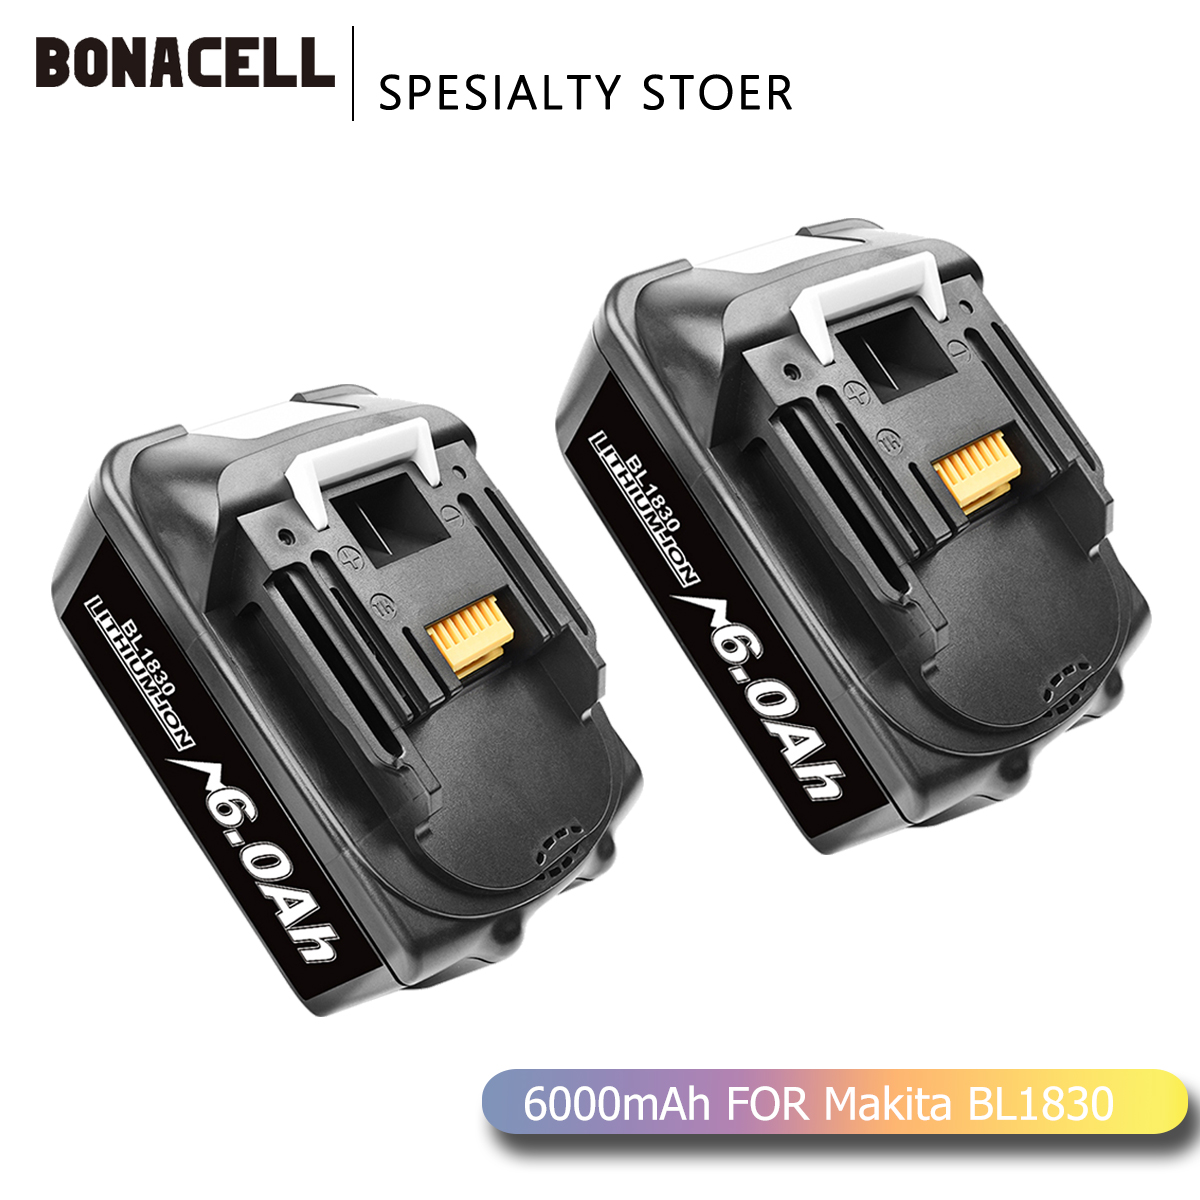 Bonacell BL1860 Rechargeable Battery 18 V 6000mAh Lithium Ion For Makita 18v Battery BL1840 BL1850 BL1830 BL1860B LXT 400 L70